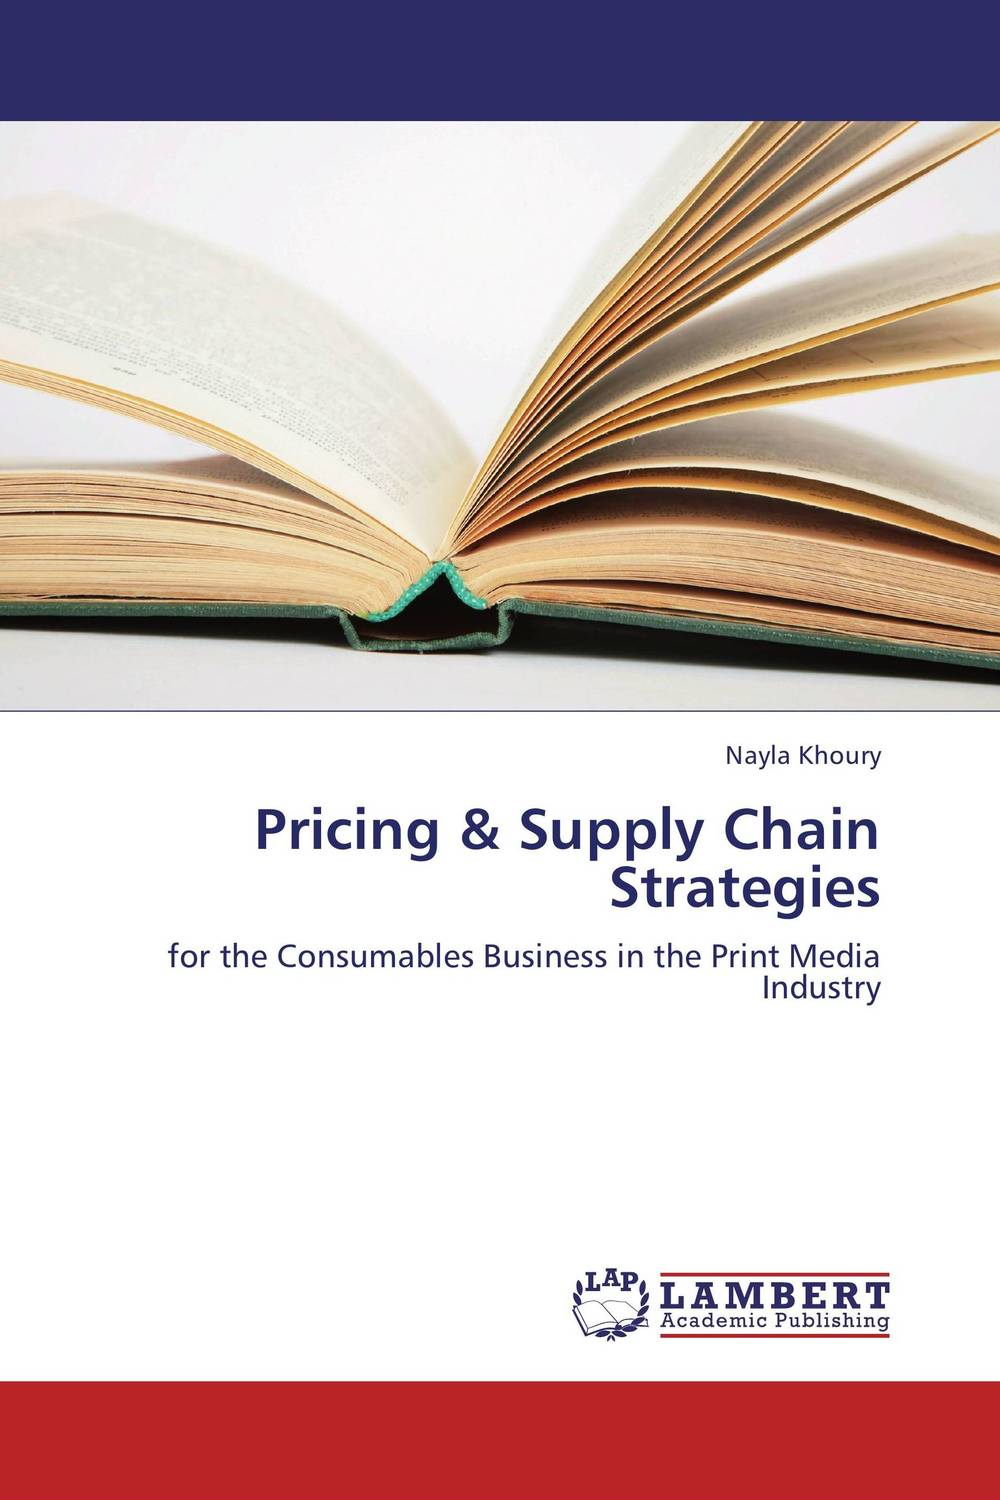 Pricing & Supply Chain Strategies robert davis a demand driven inventory optimization and replenishment creating a more efficient supply chain